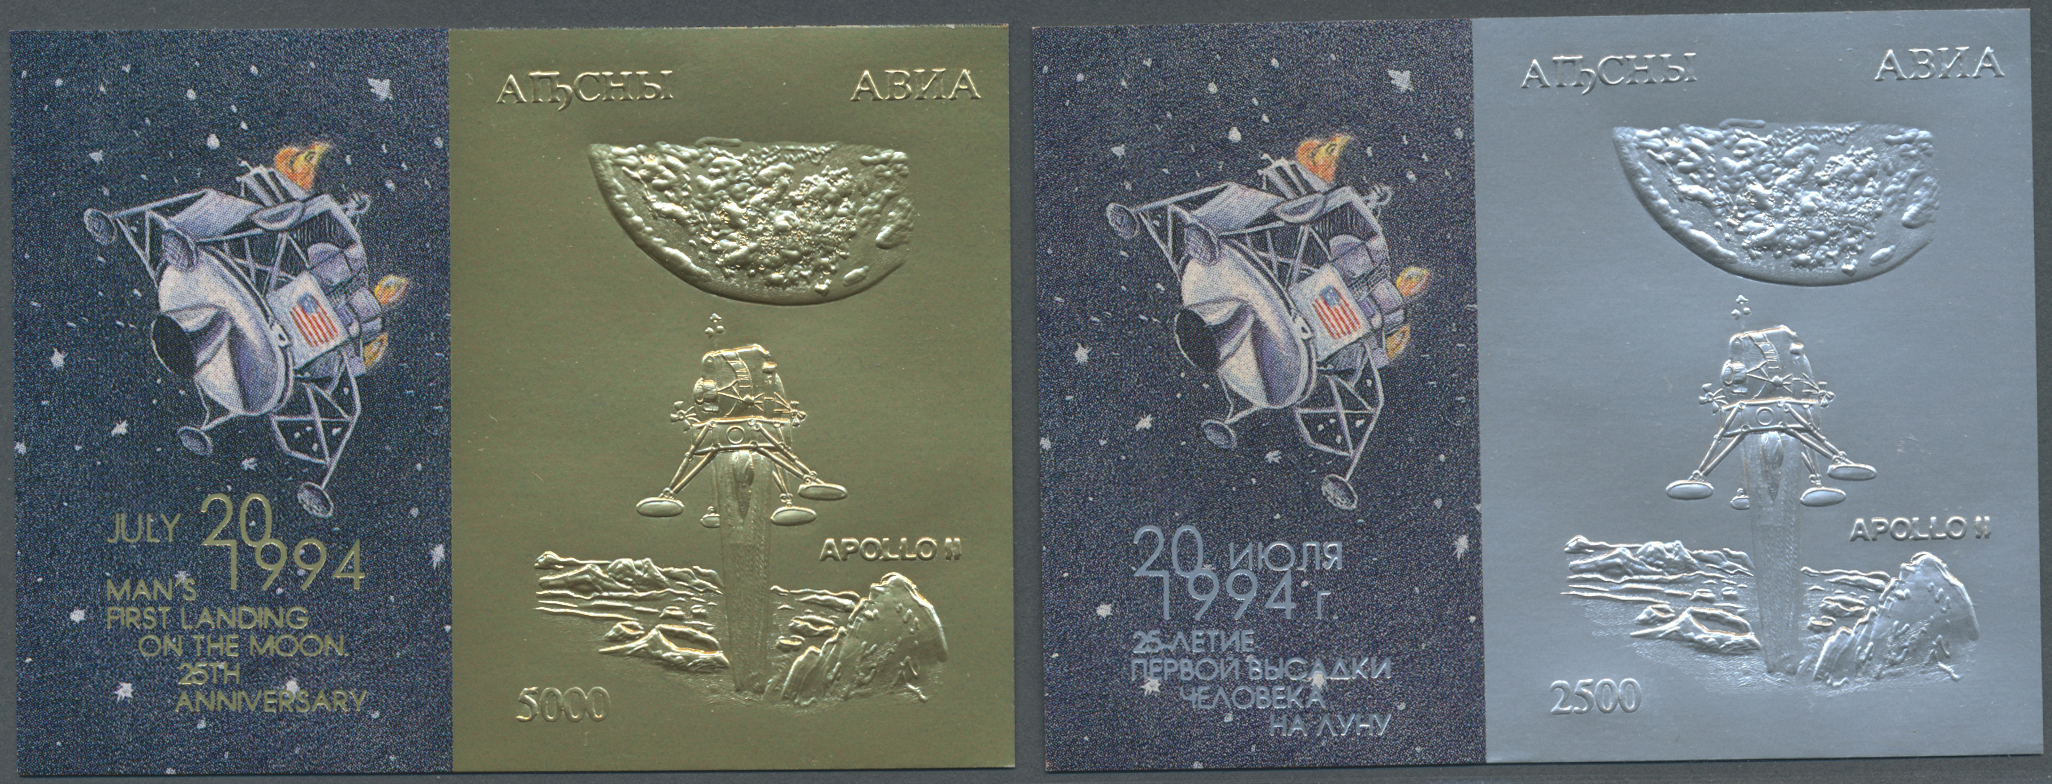 Lot 34715 - thematik: raumfahrt / astronautics  -  Auktionshaus Christoph Gärtner GmbH & Co. KG Collections Germany,  Collections Supplement, Surprise boxes #39 Day 7